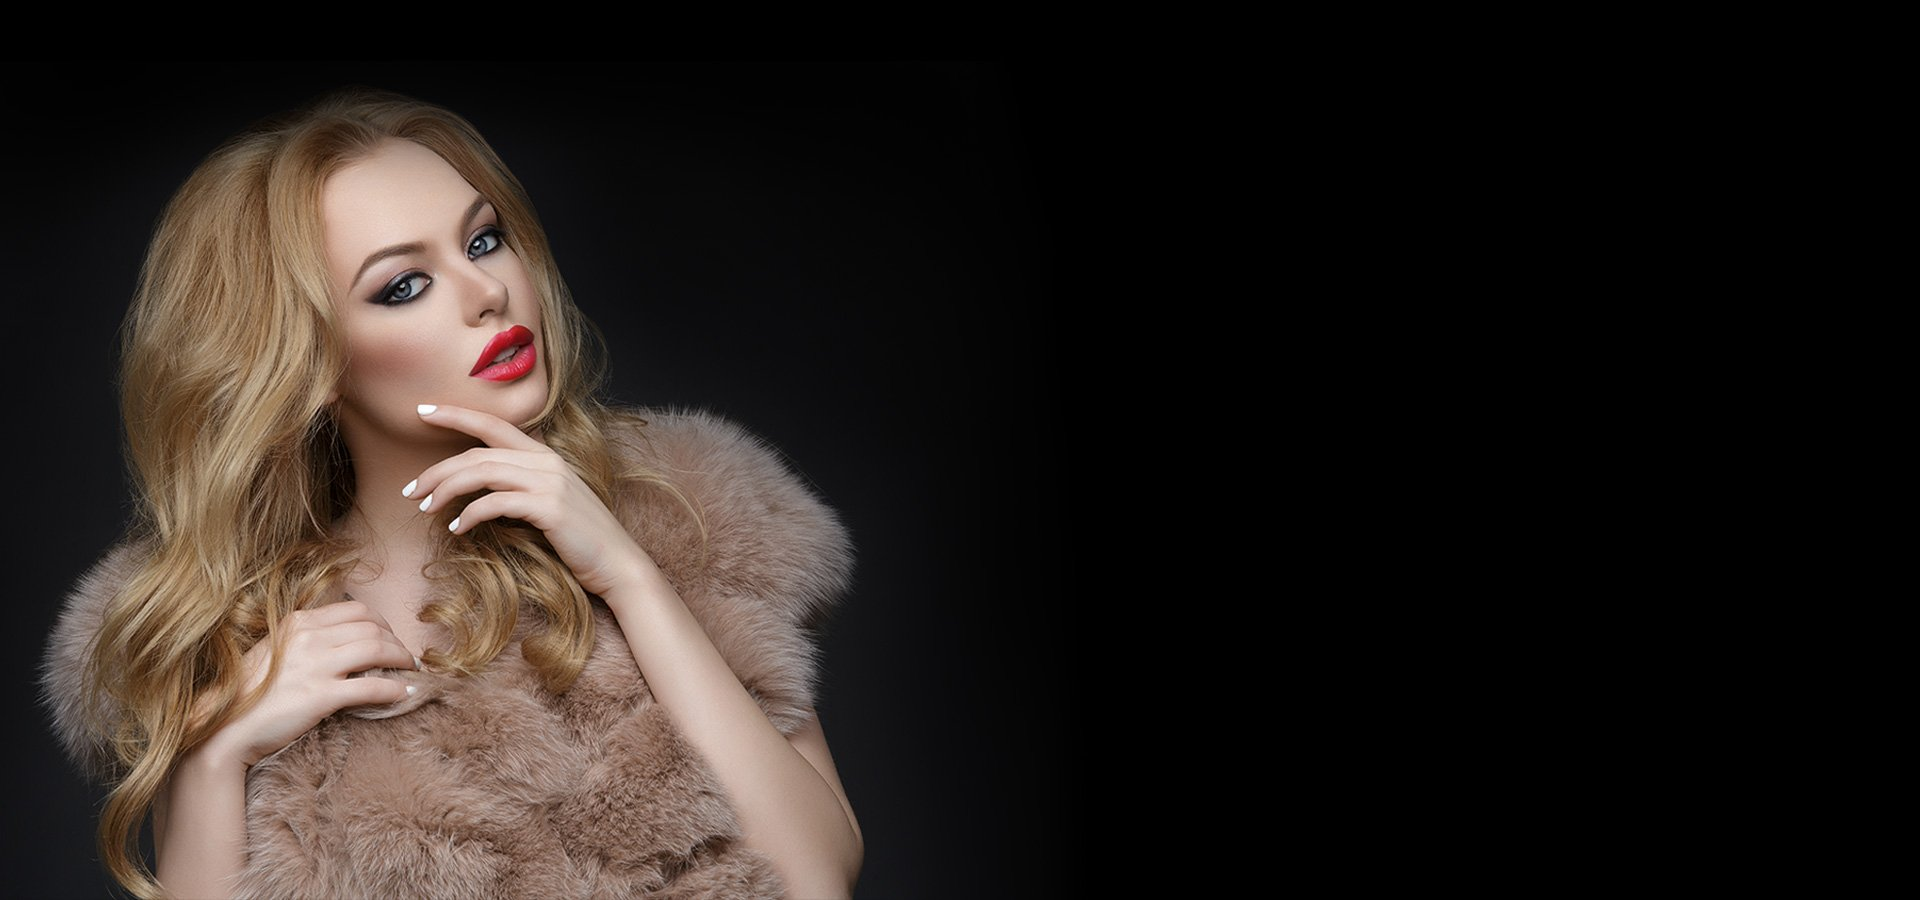 blonde girl with red lipstick and fur